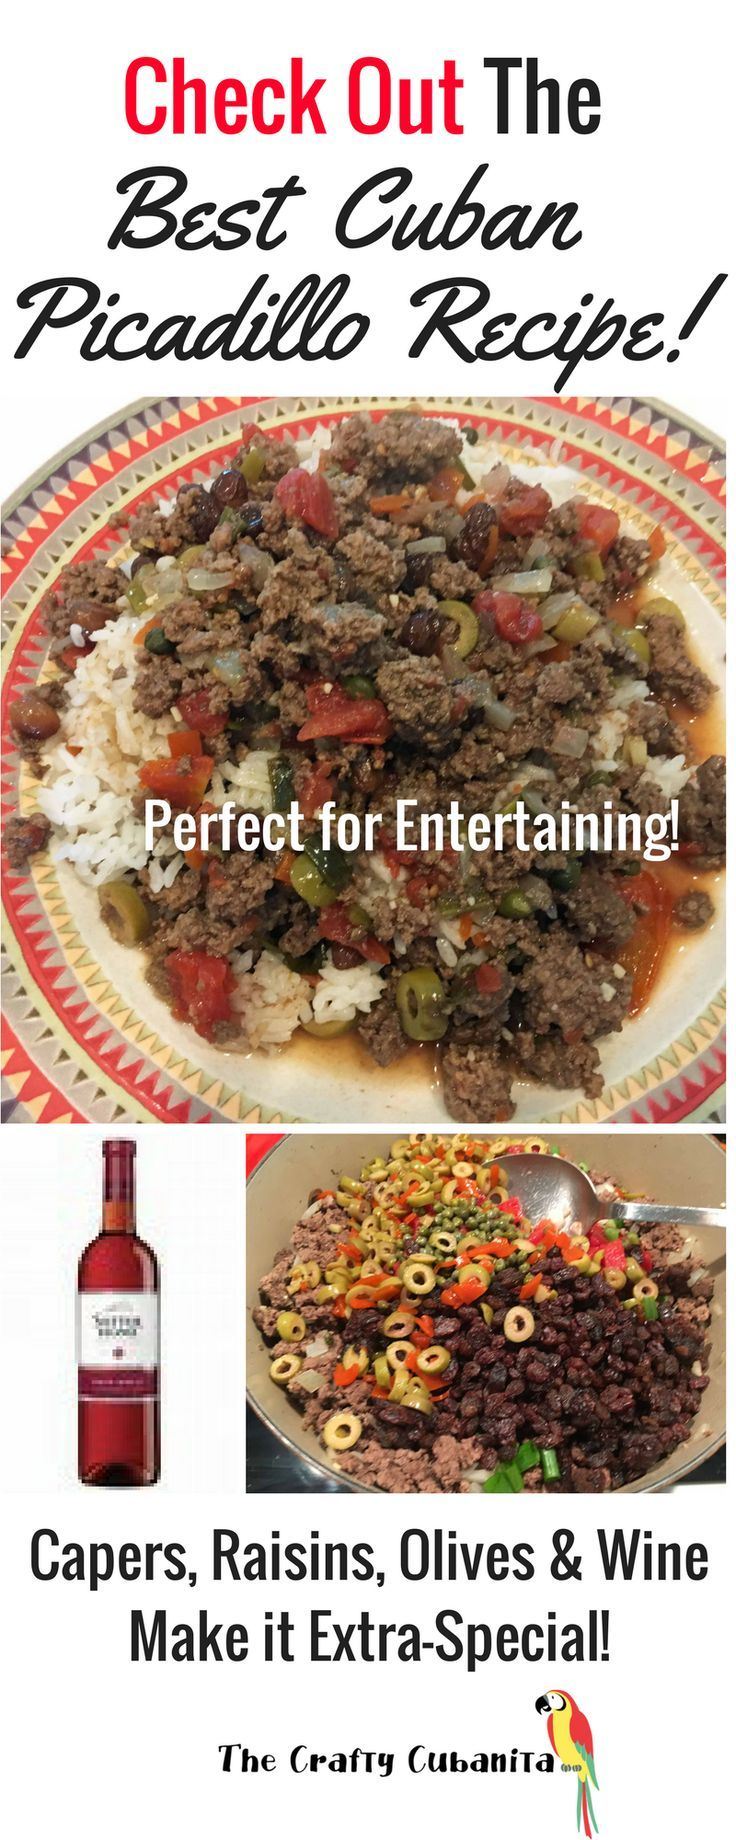 This is the Best Cuban Picadillo Recipe Ever!  Click through to find out how to make it!  Authentic picadillo, authentic Cuban picadillo, Spanish picadillo recipe, cook picadillo, cuban cuisine, cuban beef dishes, authentic cuban food, recipe Cuban picadillo,